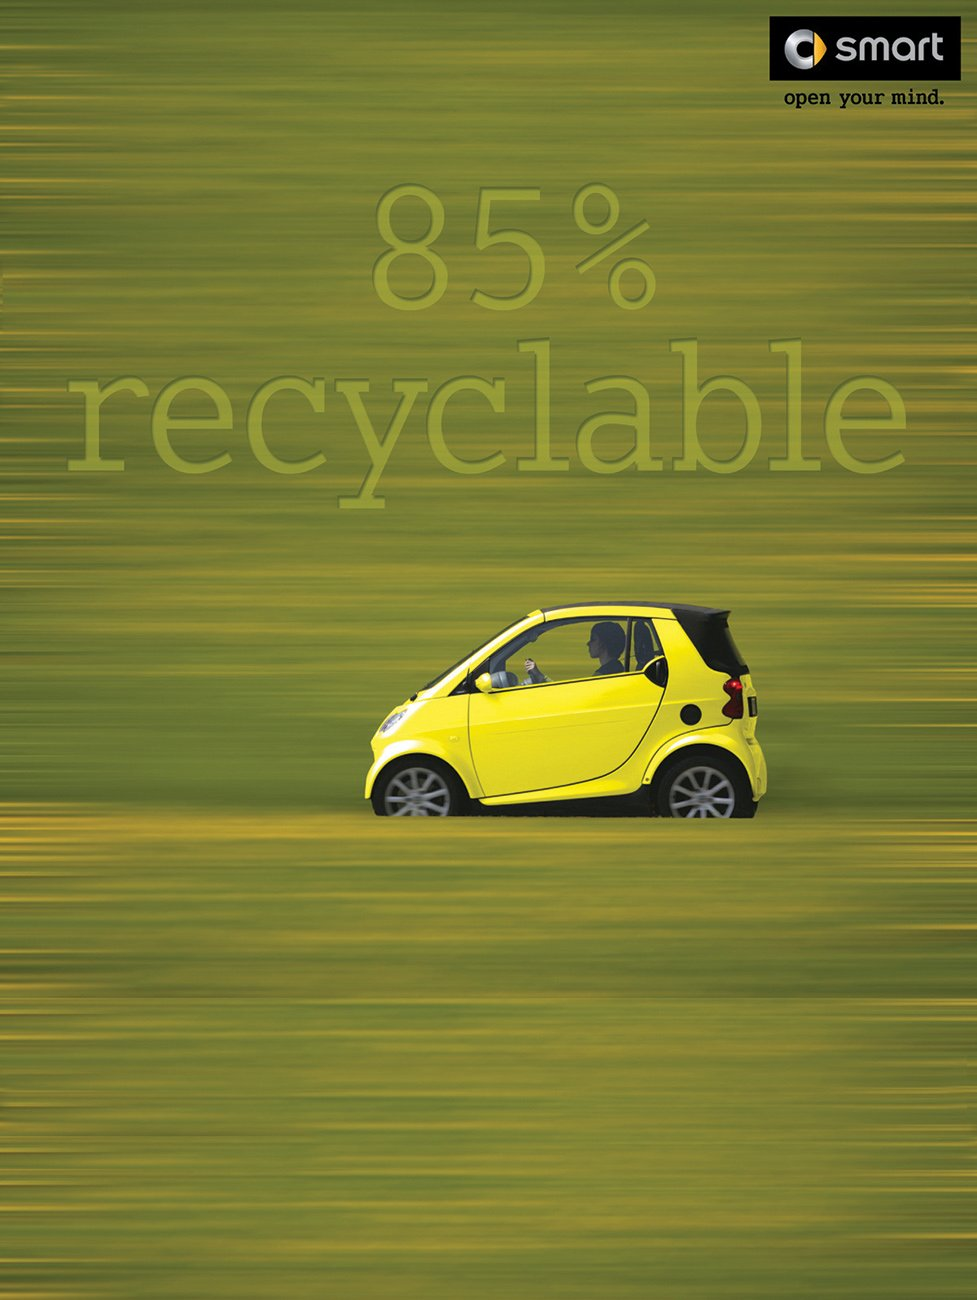 Smart Car Poster created for Beshoff MotorCars